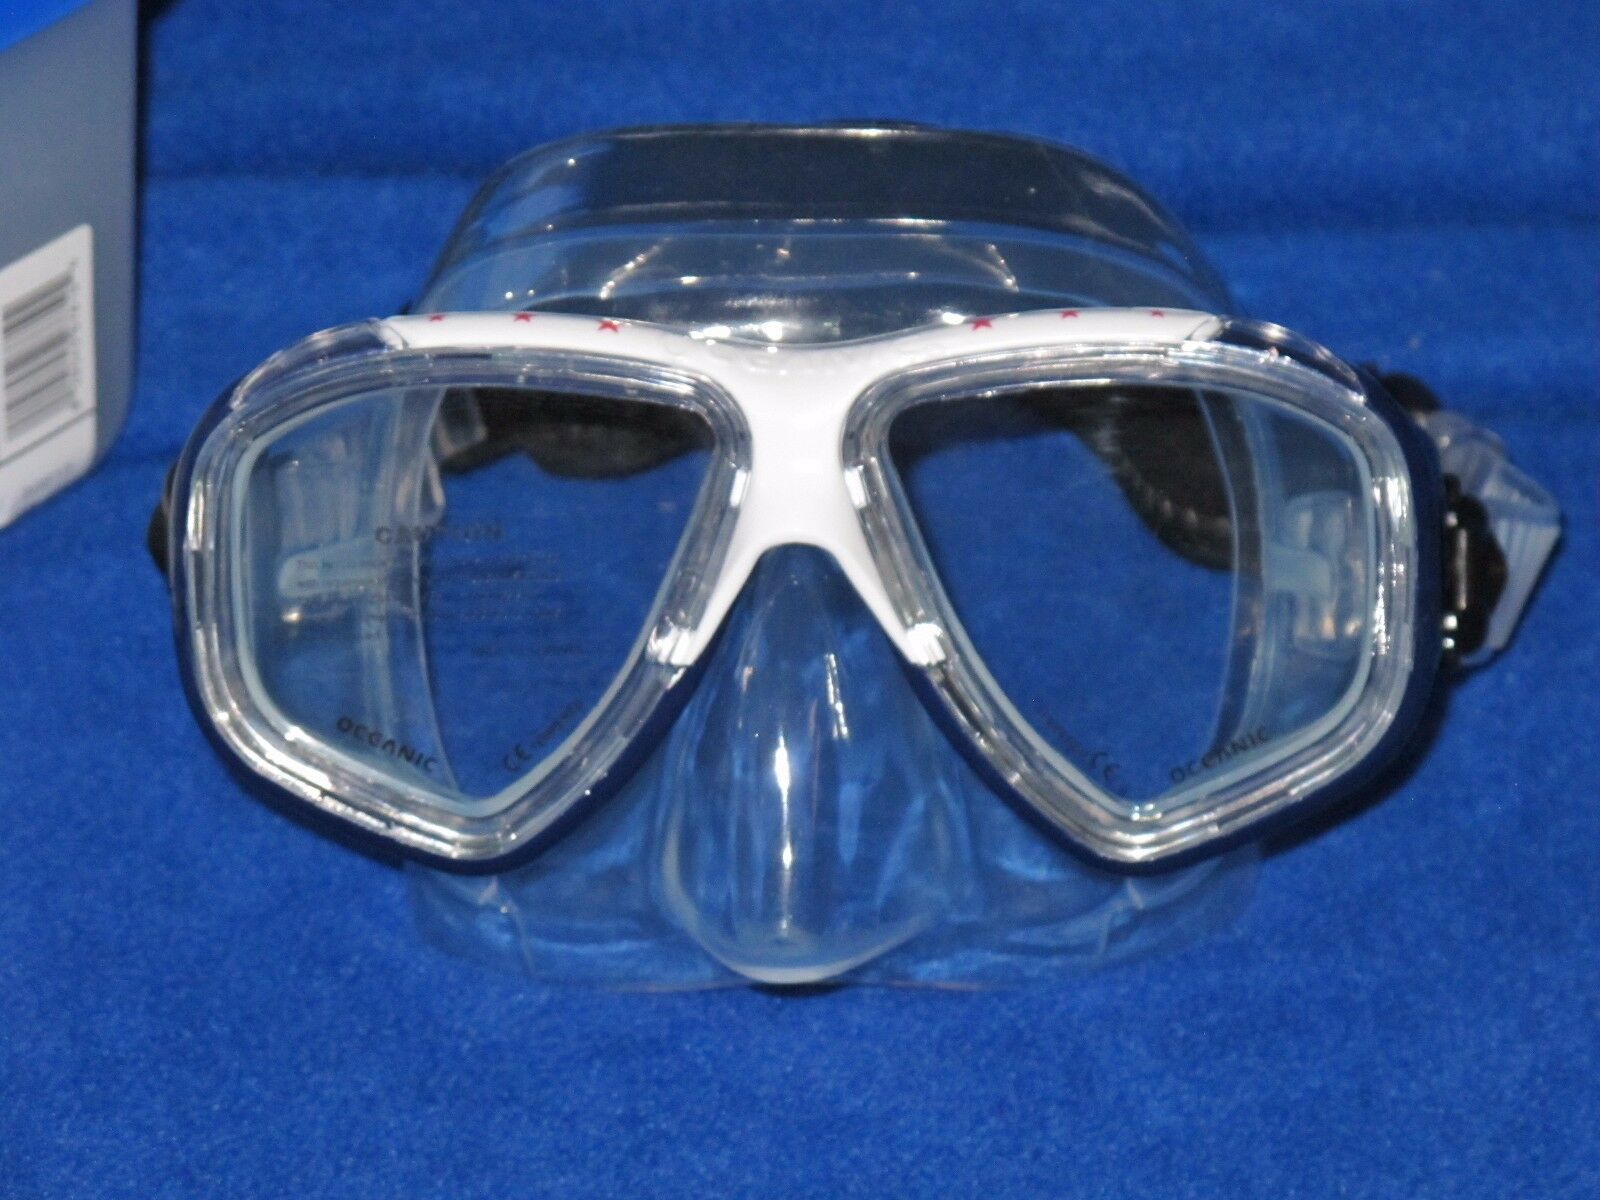 Oceanic Ion scuba diving and snorkeling Mask with Neo strap USA Edition